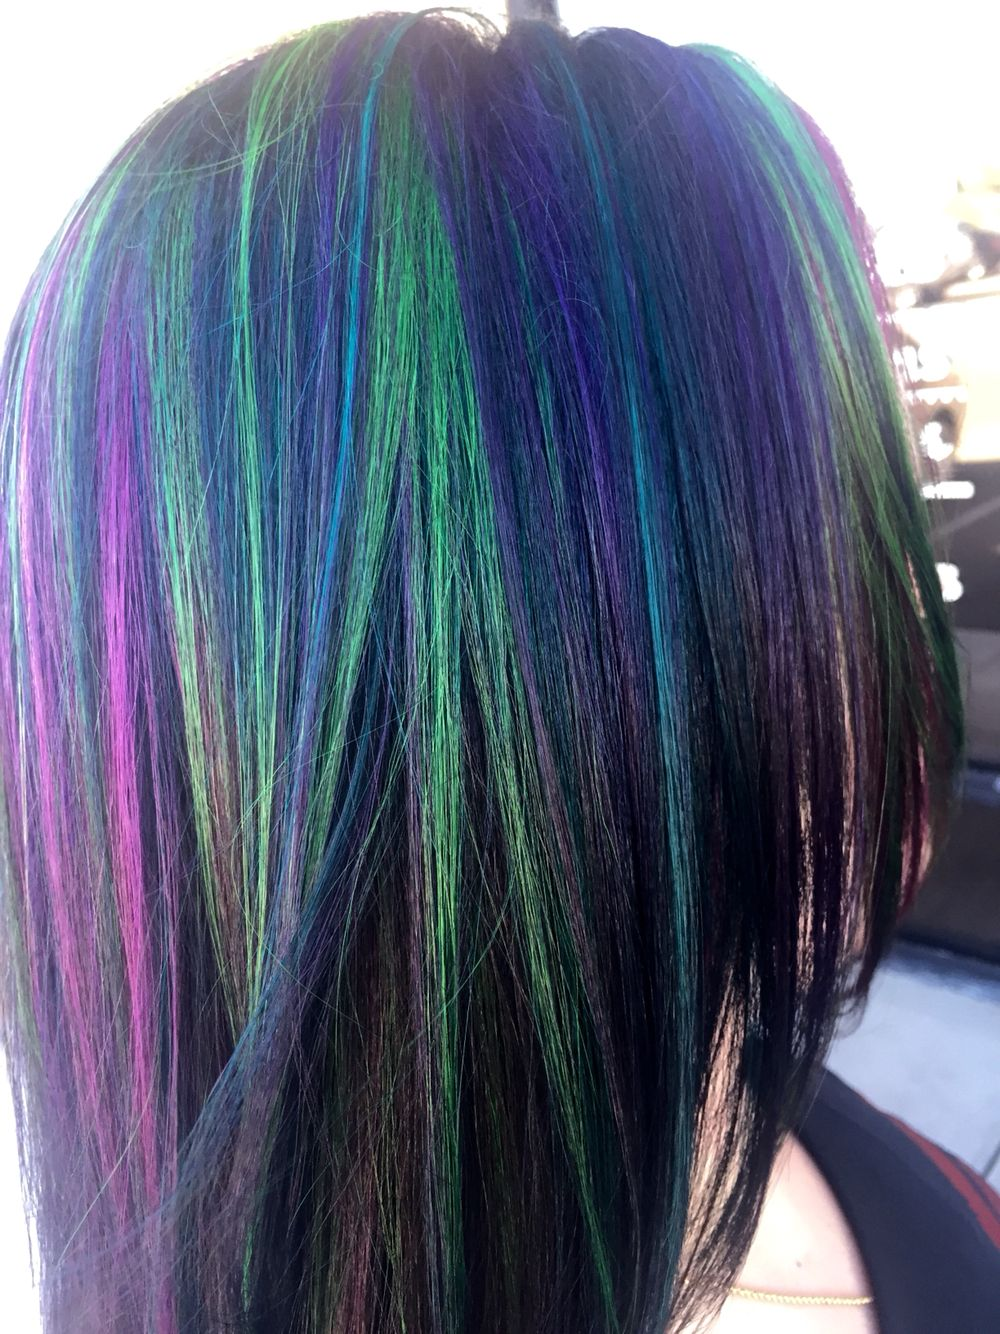 Multi Colored Highlights Green Highlights Hot Pink Highlights Purple Highlights Blue Highlights Dark Brown B Peacock Hair Color Lemon Hair Hair Highlights